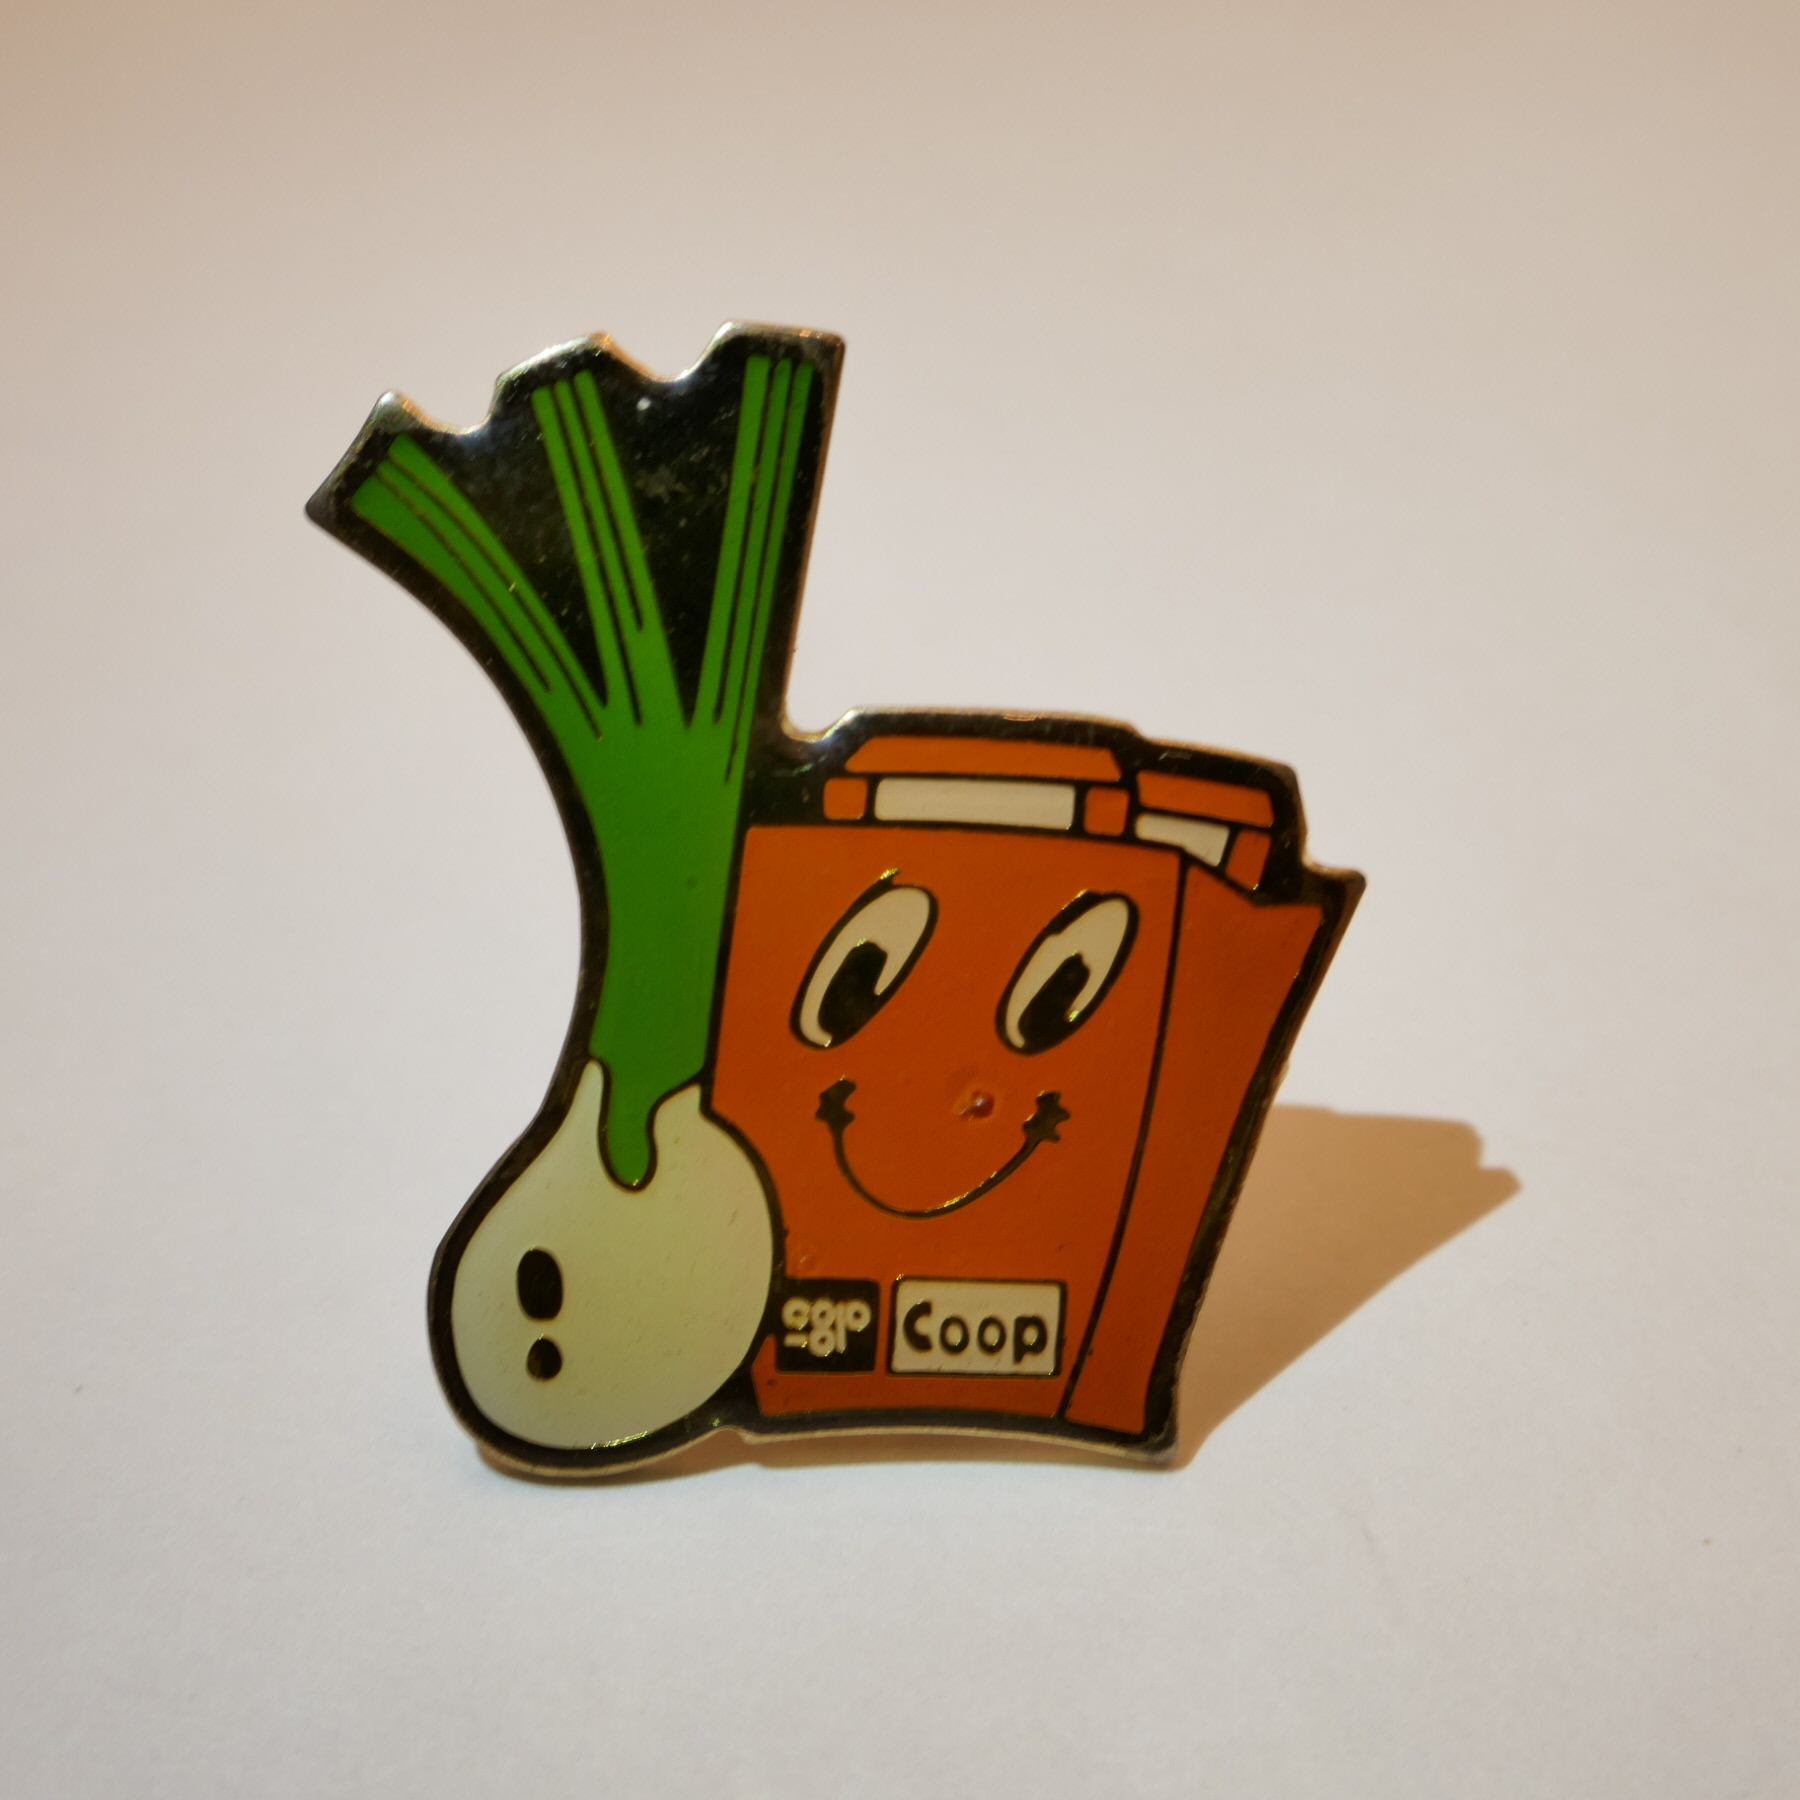 COOP ONION pins